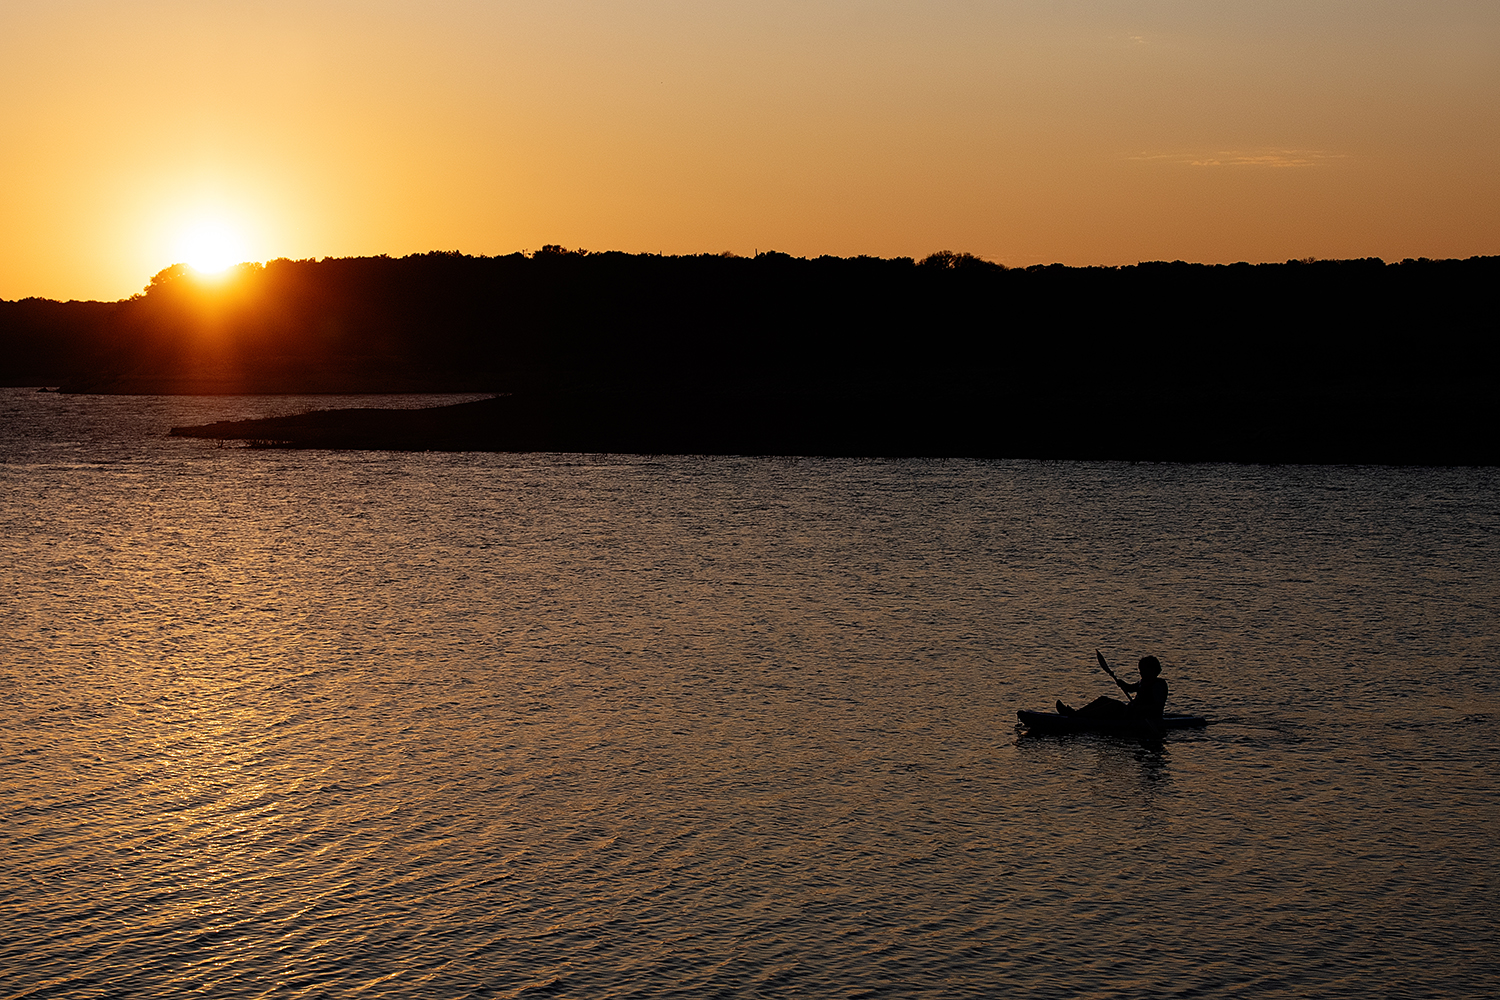 sunset photo of boy in kayak